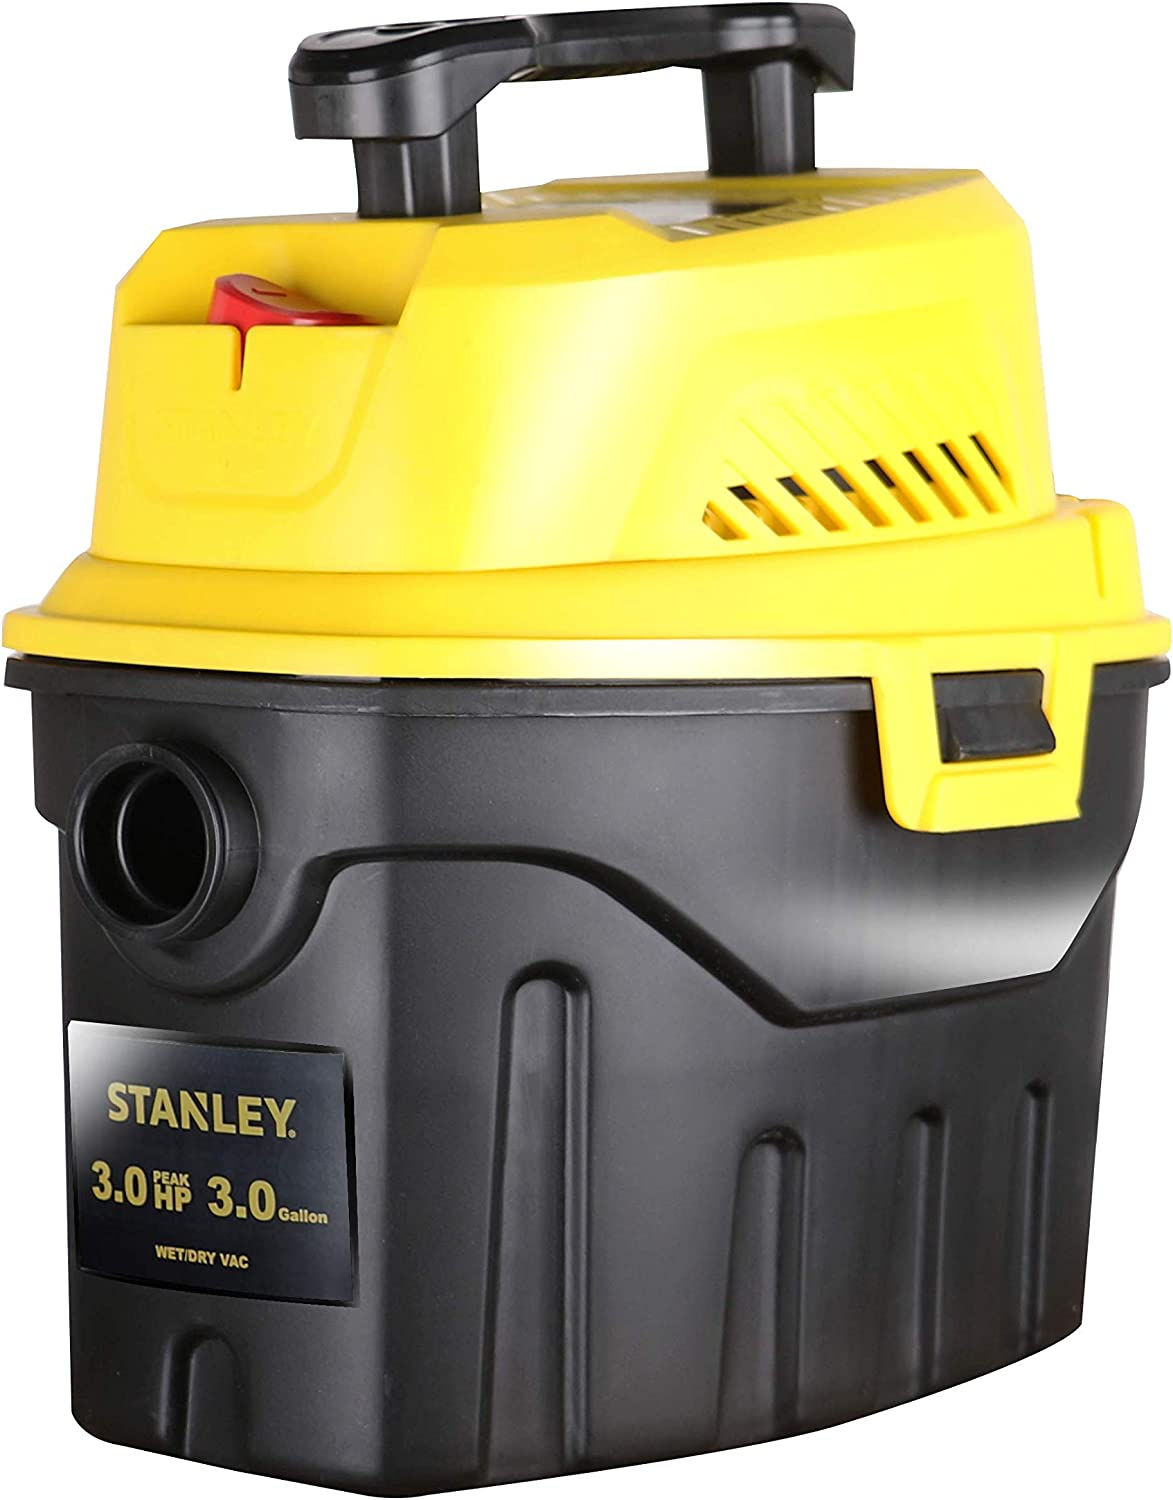 Stanley SL18910P-3 Wet Dry, 3 Gallon, 3 Horsepower, Portable Car Vacuum, 3.0 HP AC, Black